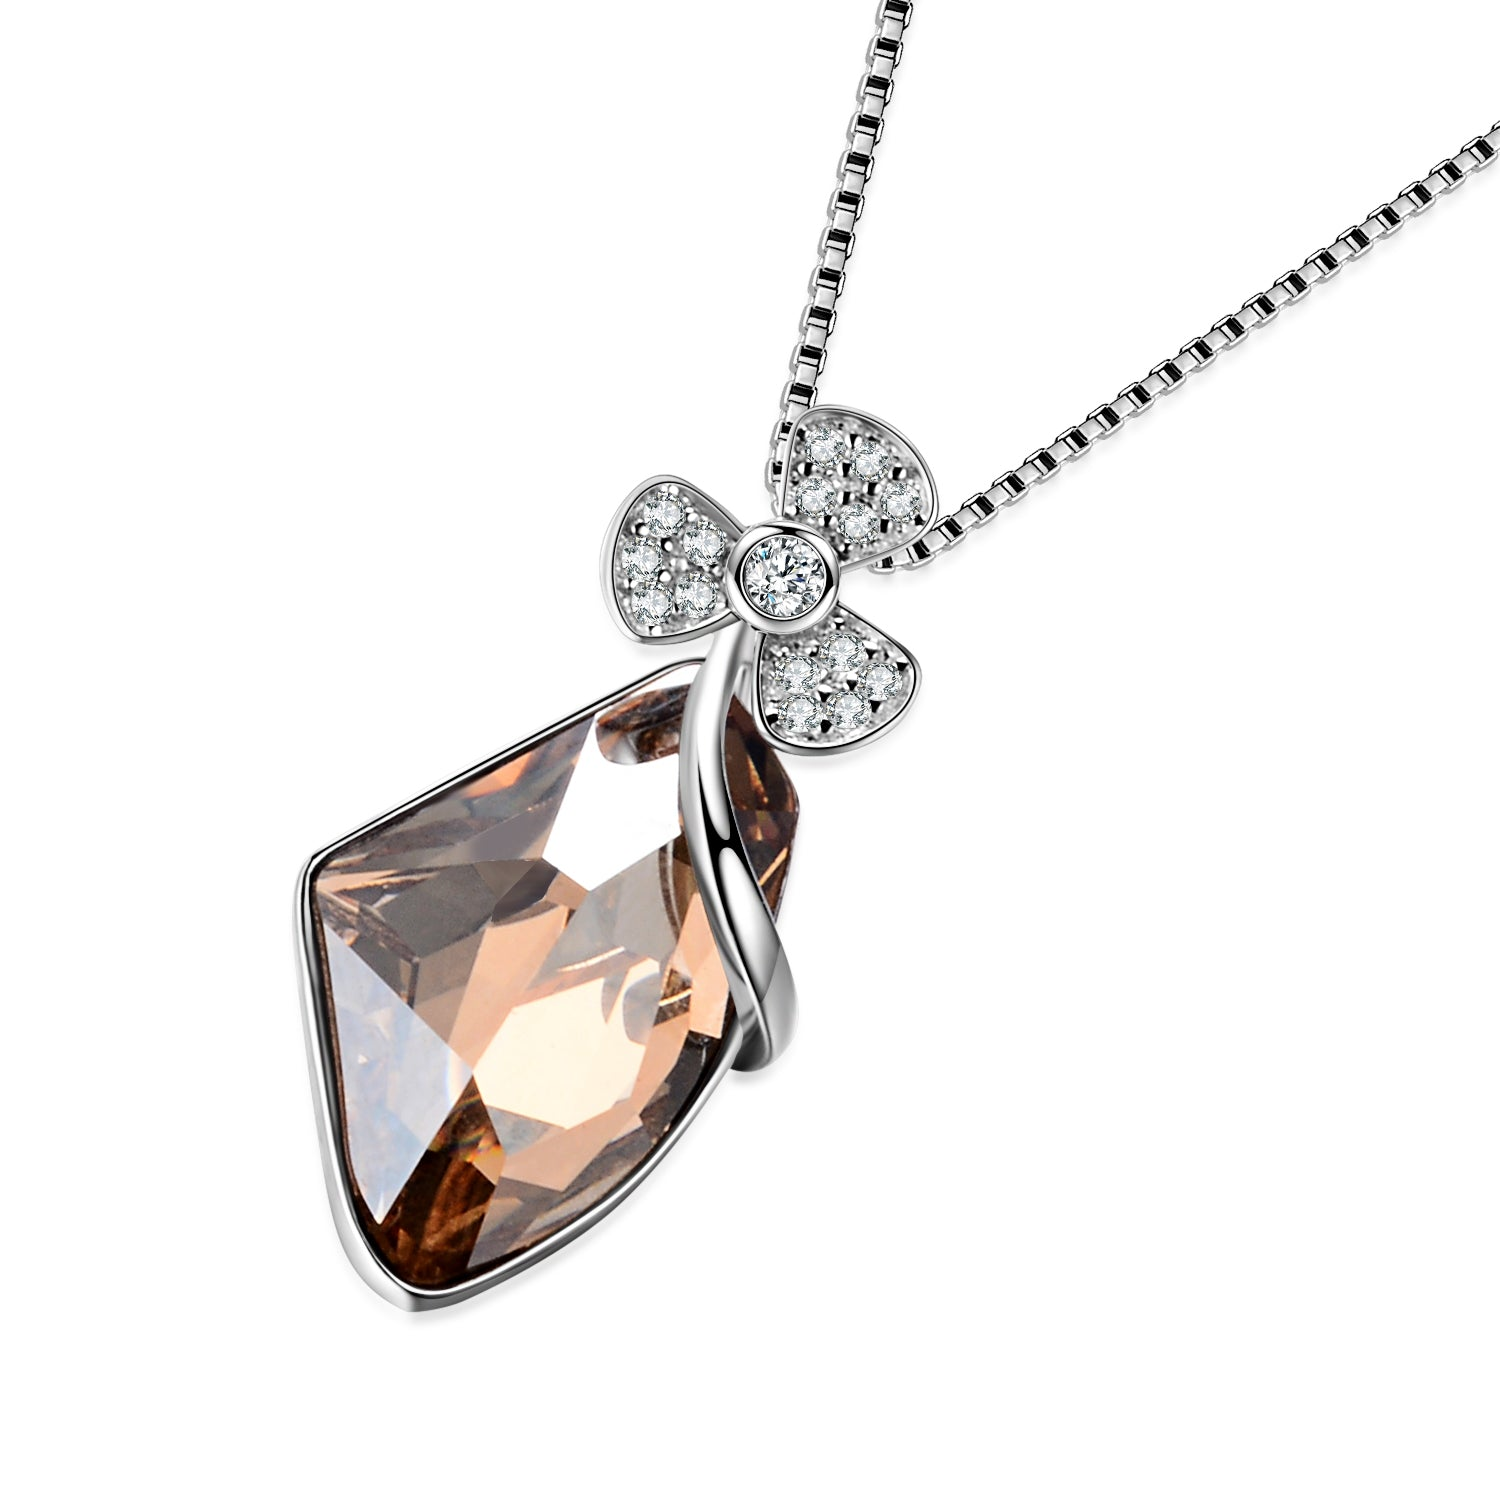 Women Jewelry Pendant Necklace Gemstone Silver 925 Wholesale Necklace